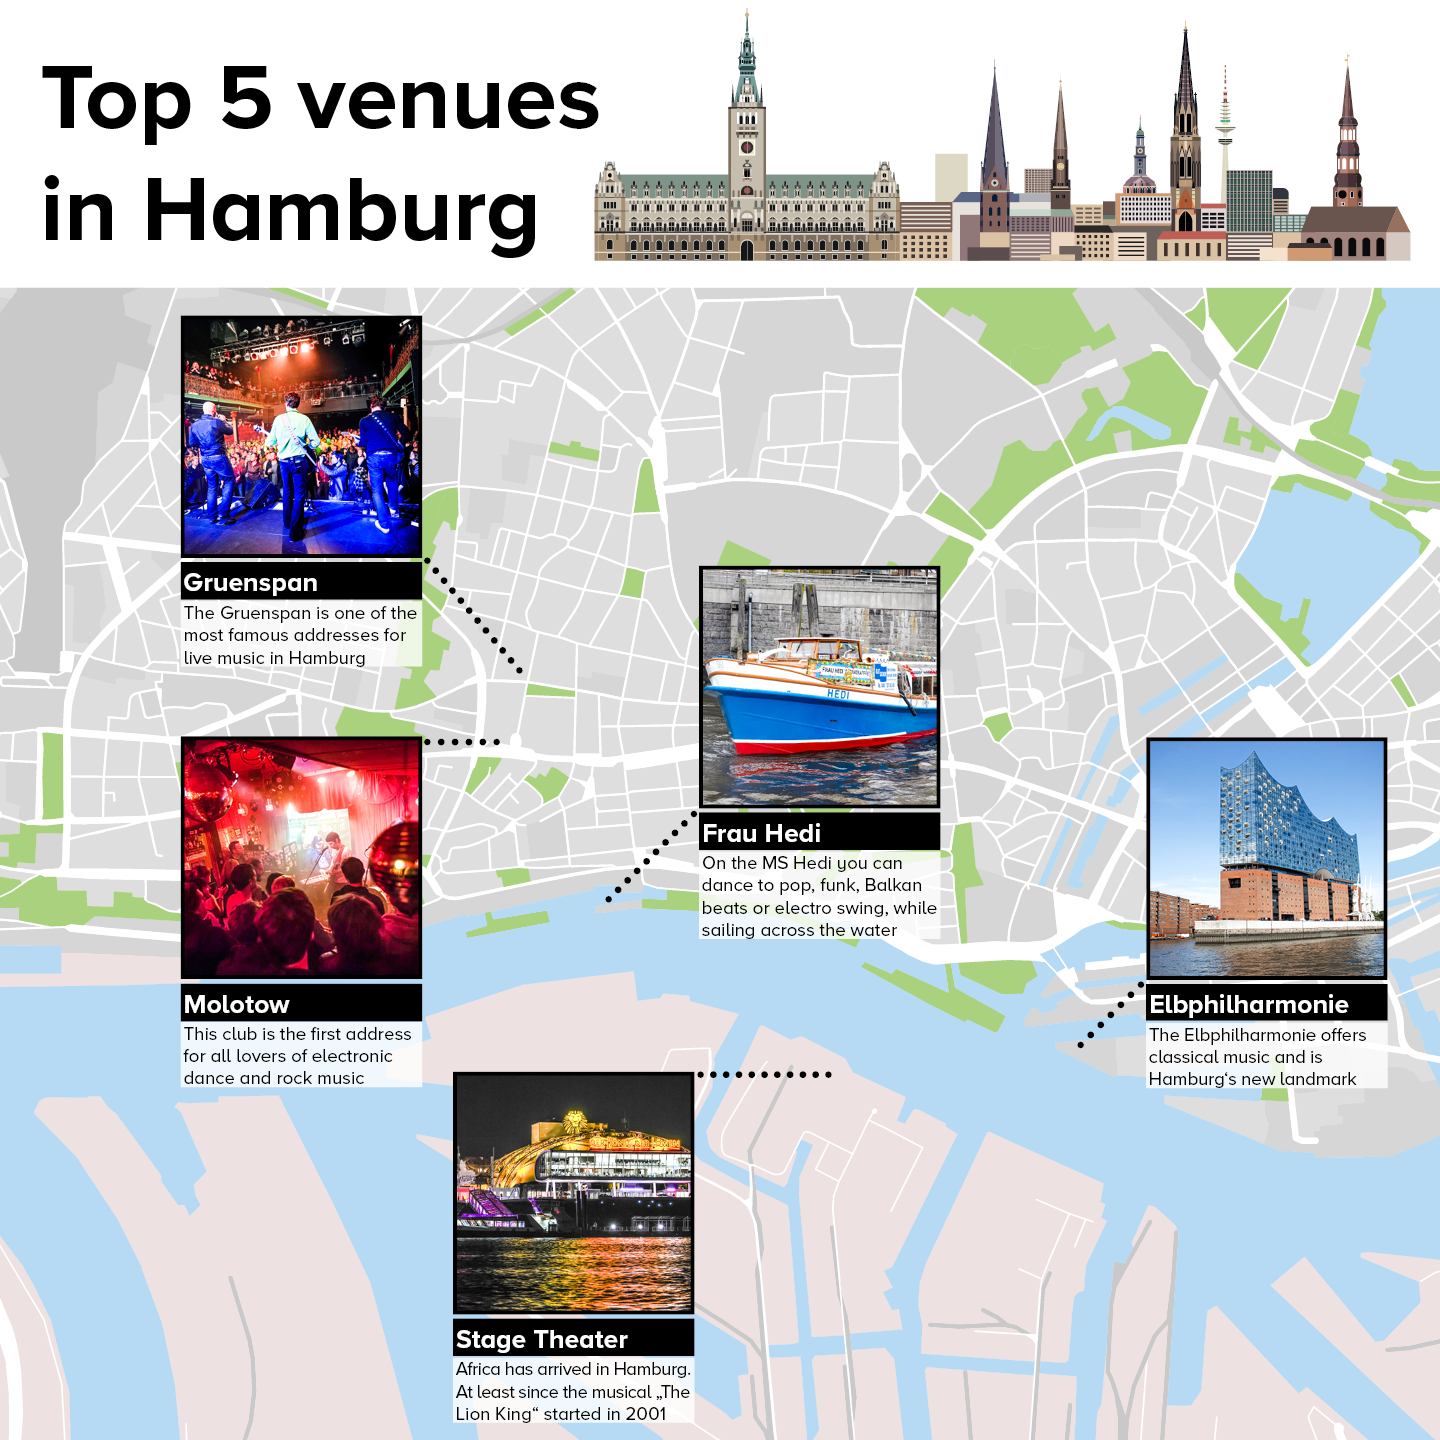 Top 5 venues in Hamburg